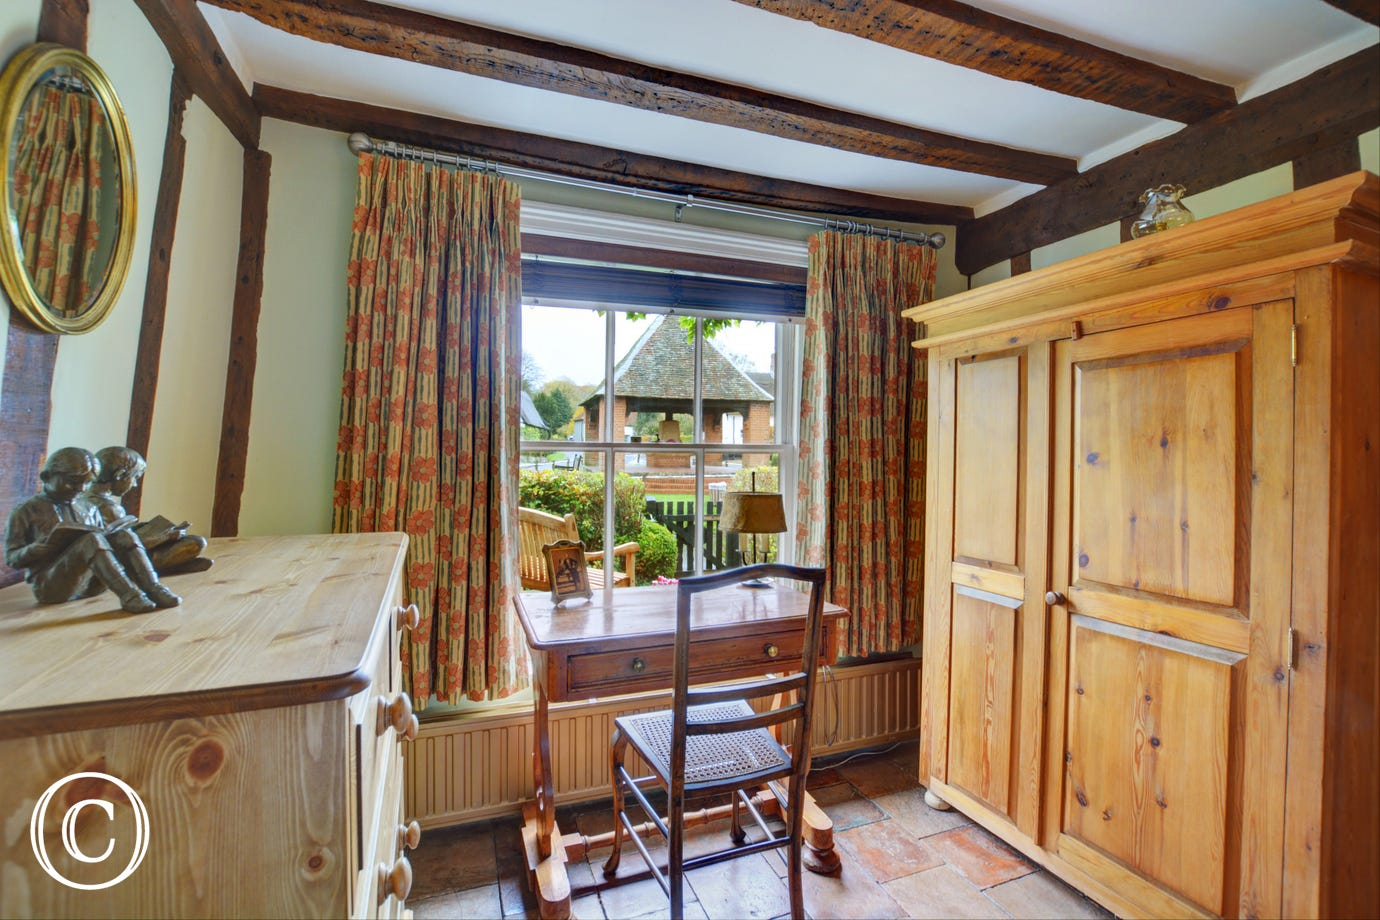 Bedroom 1 has a wardrobe, chest of drawers and a desk next to the window - perhaps a good spot to write a postcard or two